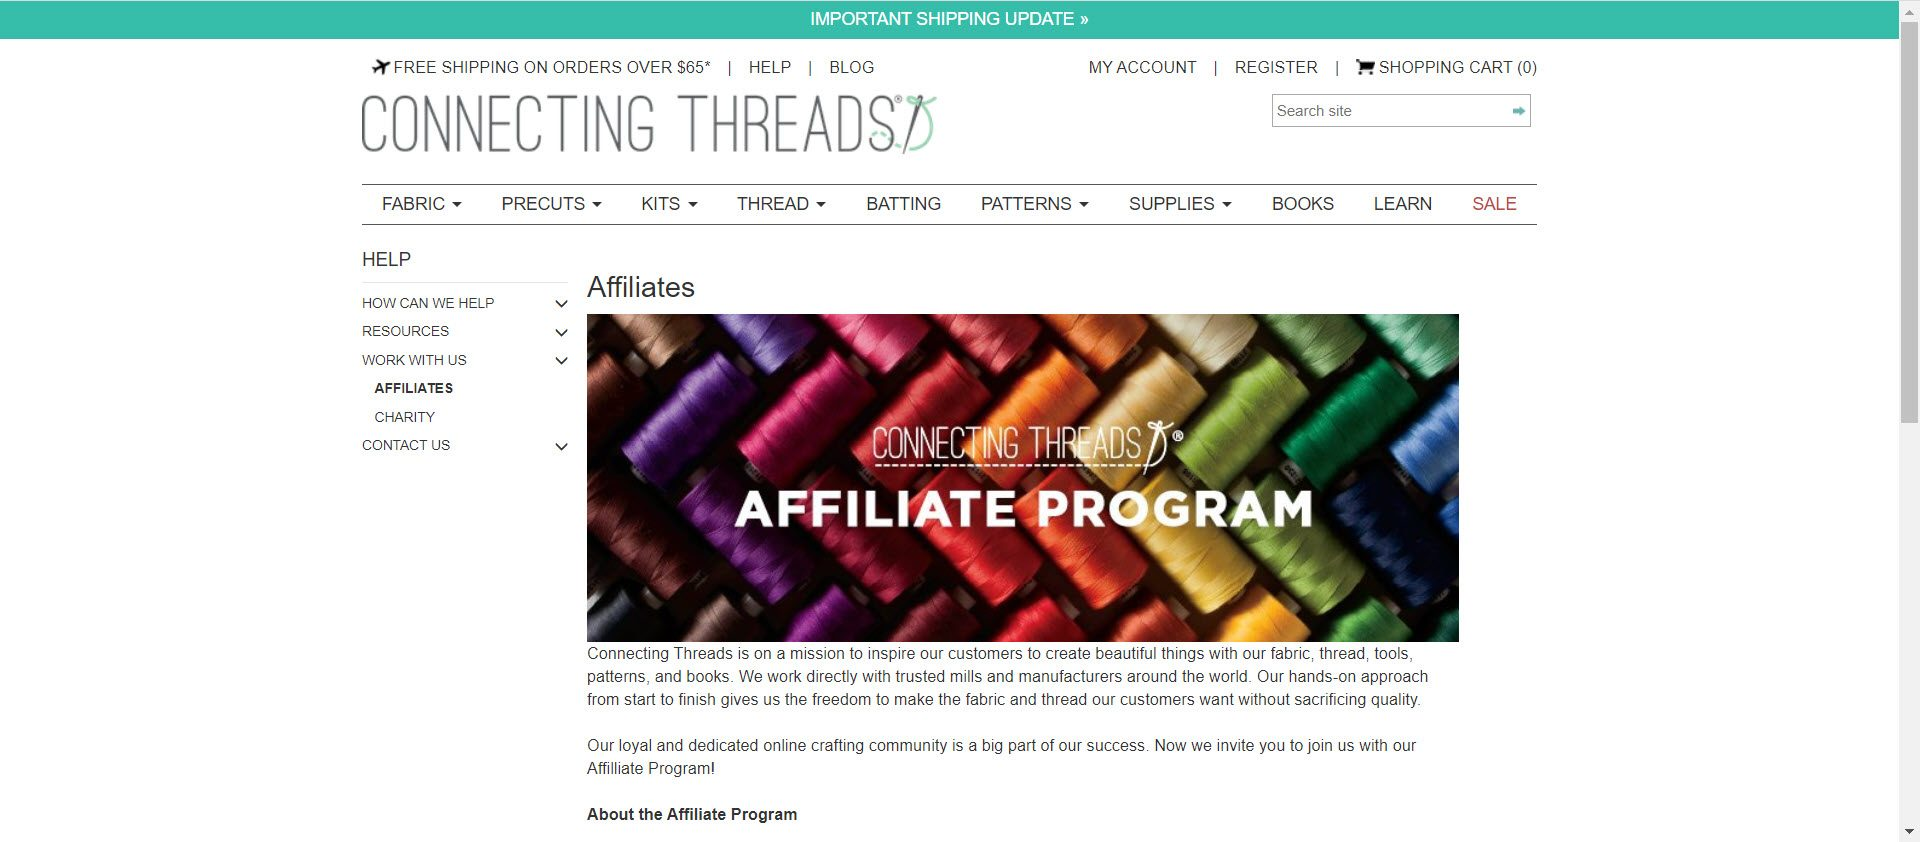 sewing affiliate programs - Connecting Threads affiliate